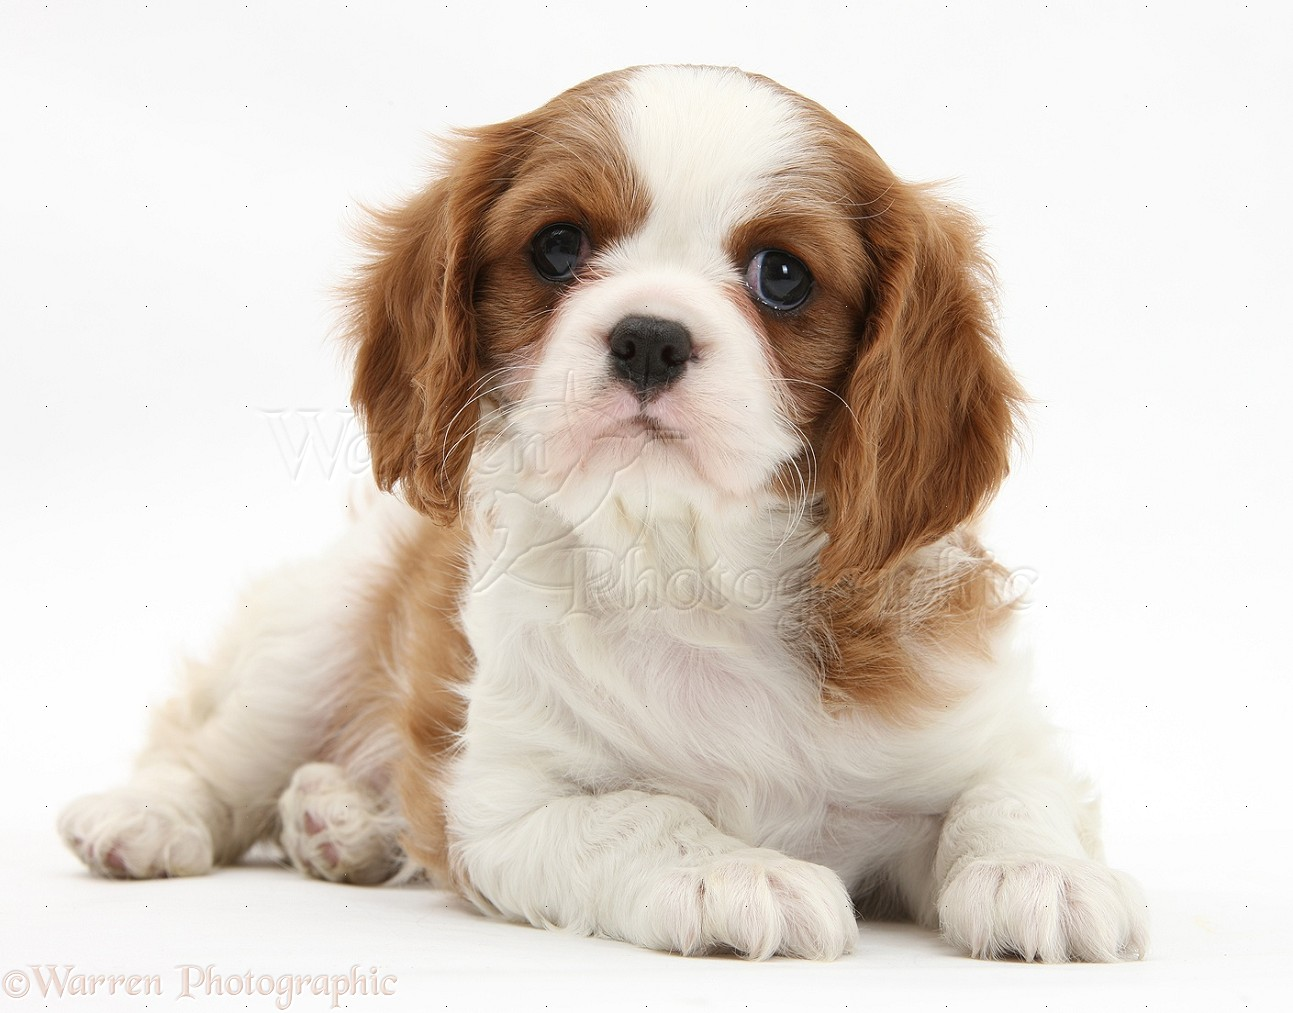 King Charles Spaniel Puppy Images King Charles Spaniel Pup